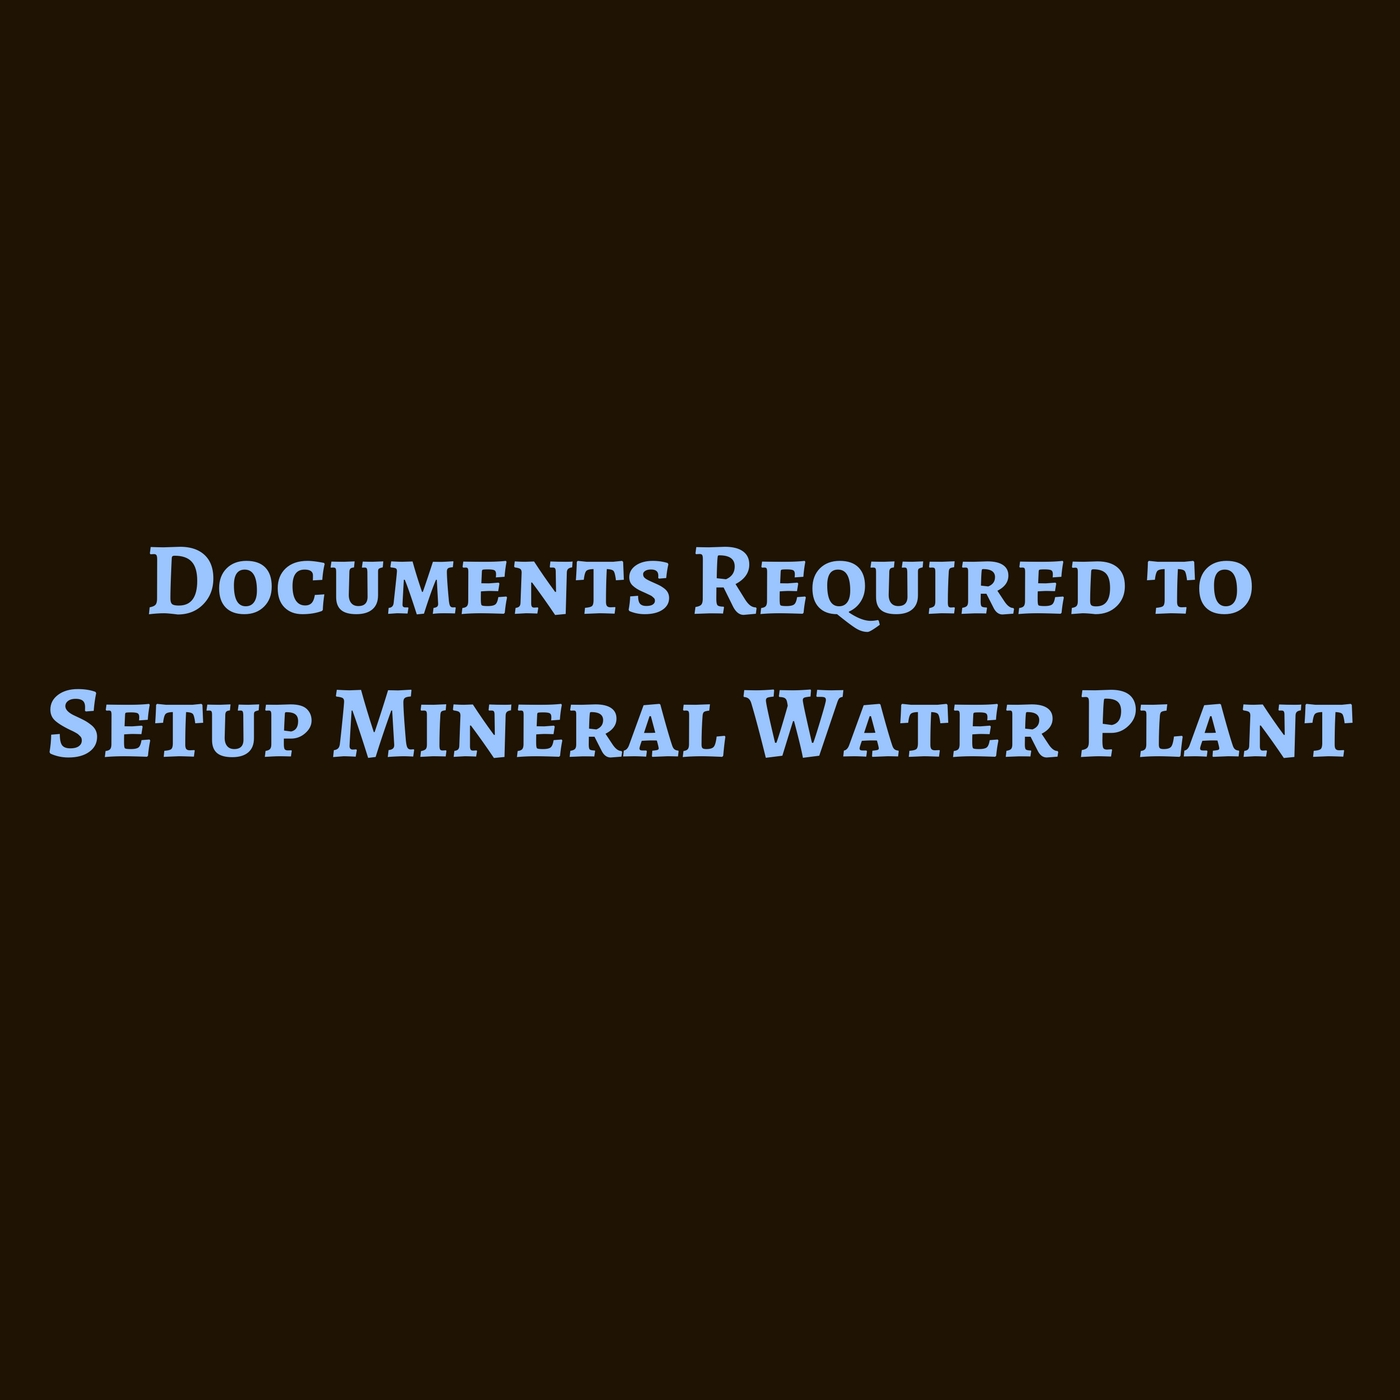 Documents Required to Setup Mineral Water Plant | Aapka